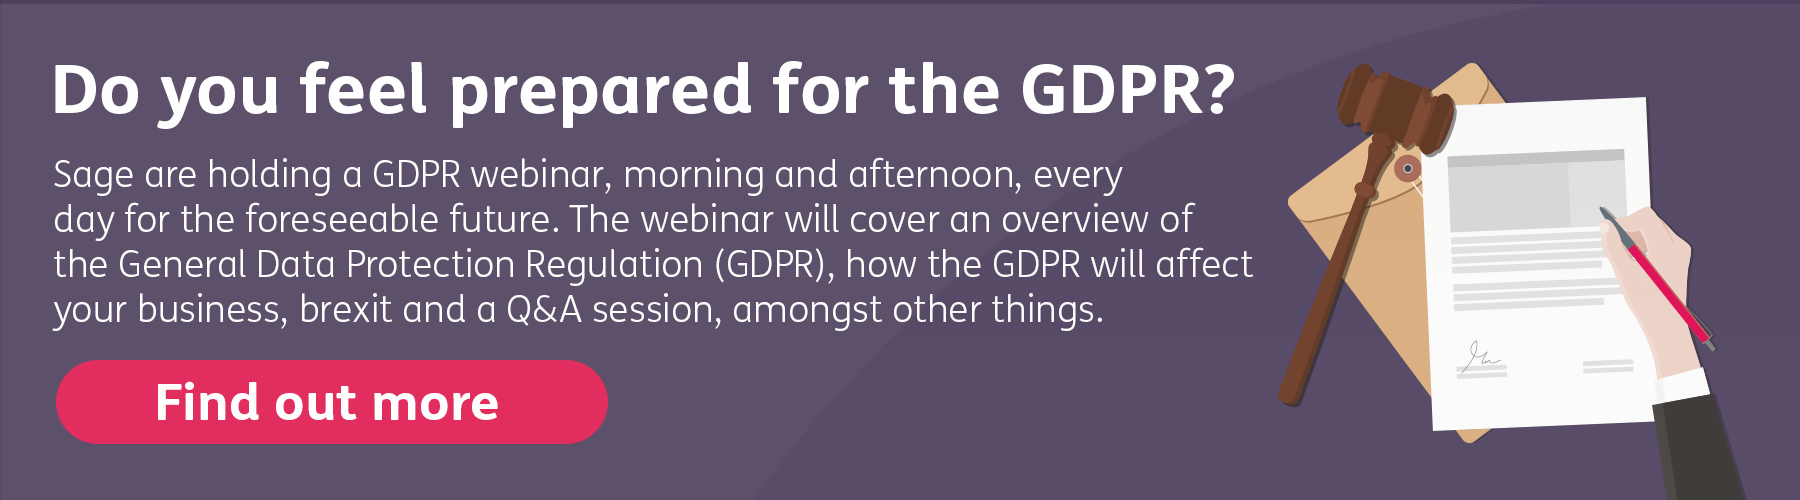 Do you understand how the GDPR affects your business? - Sage UK